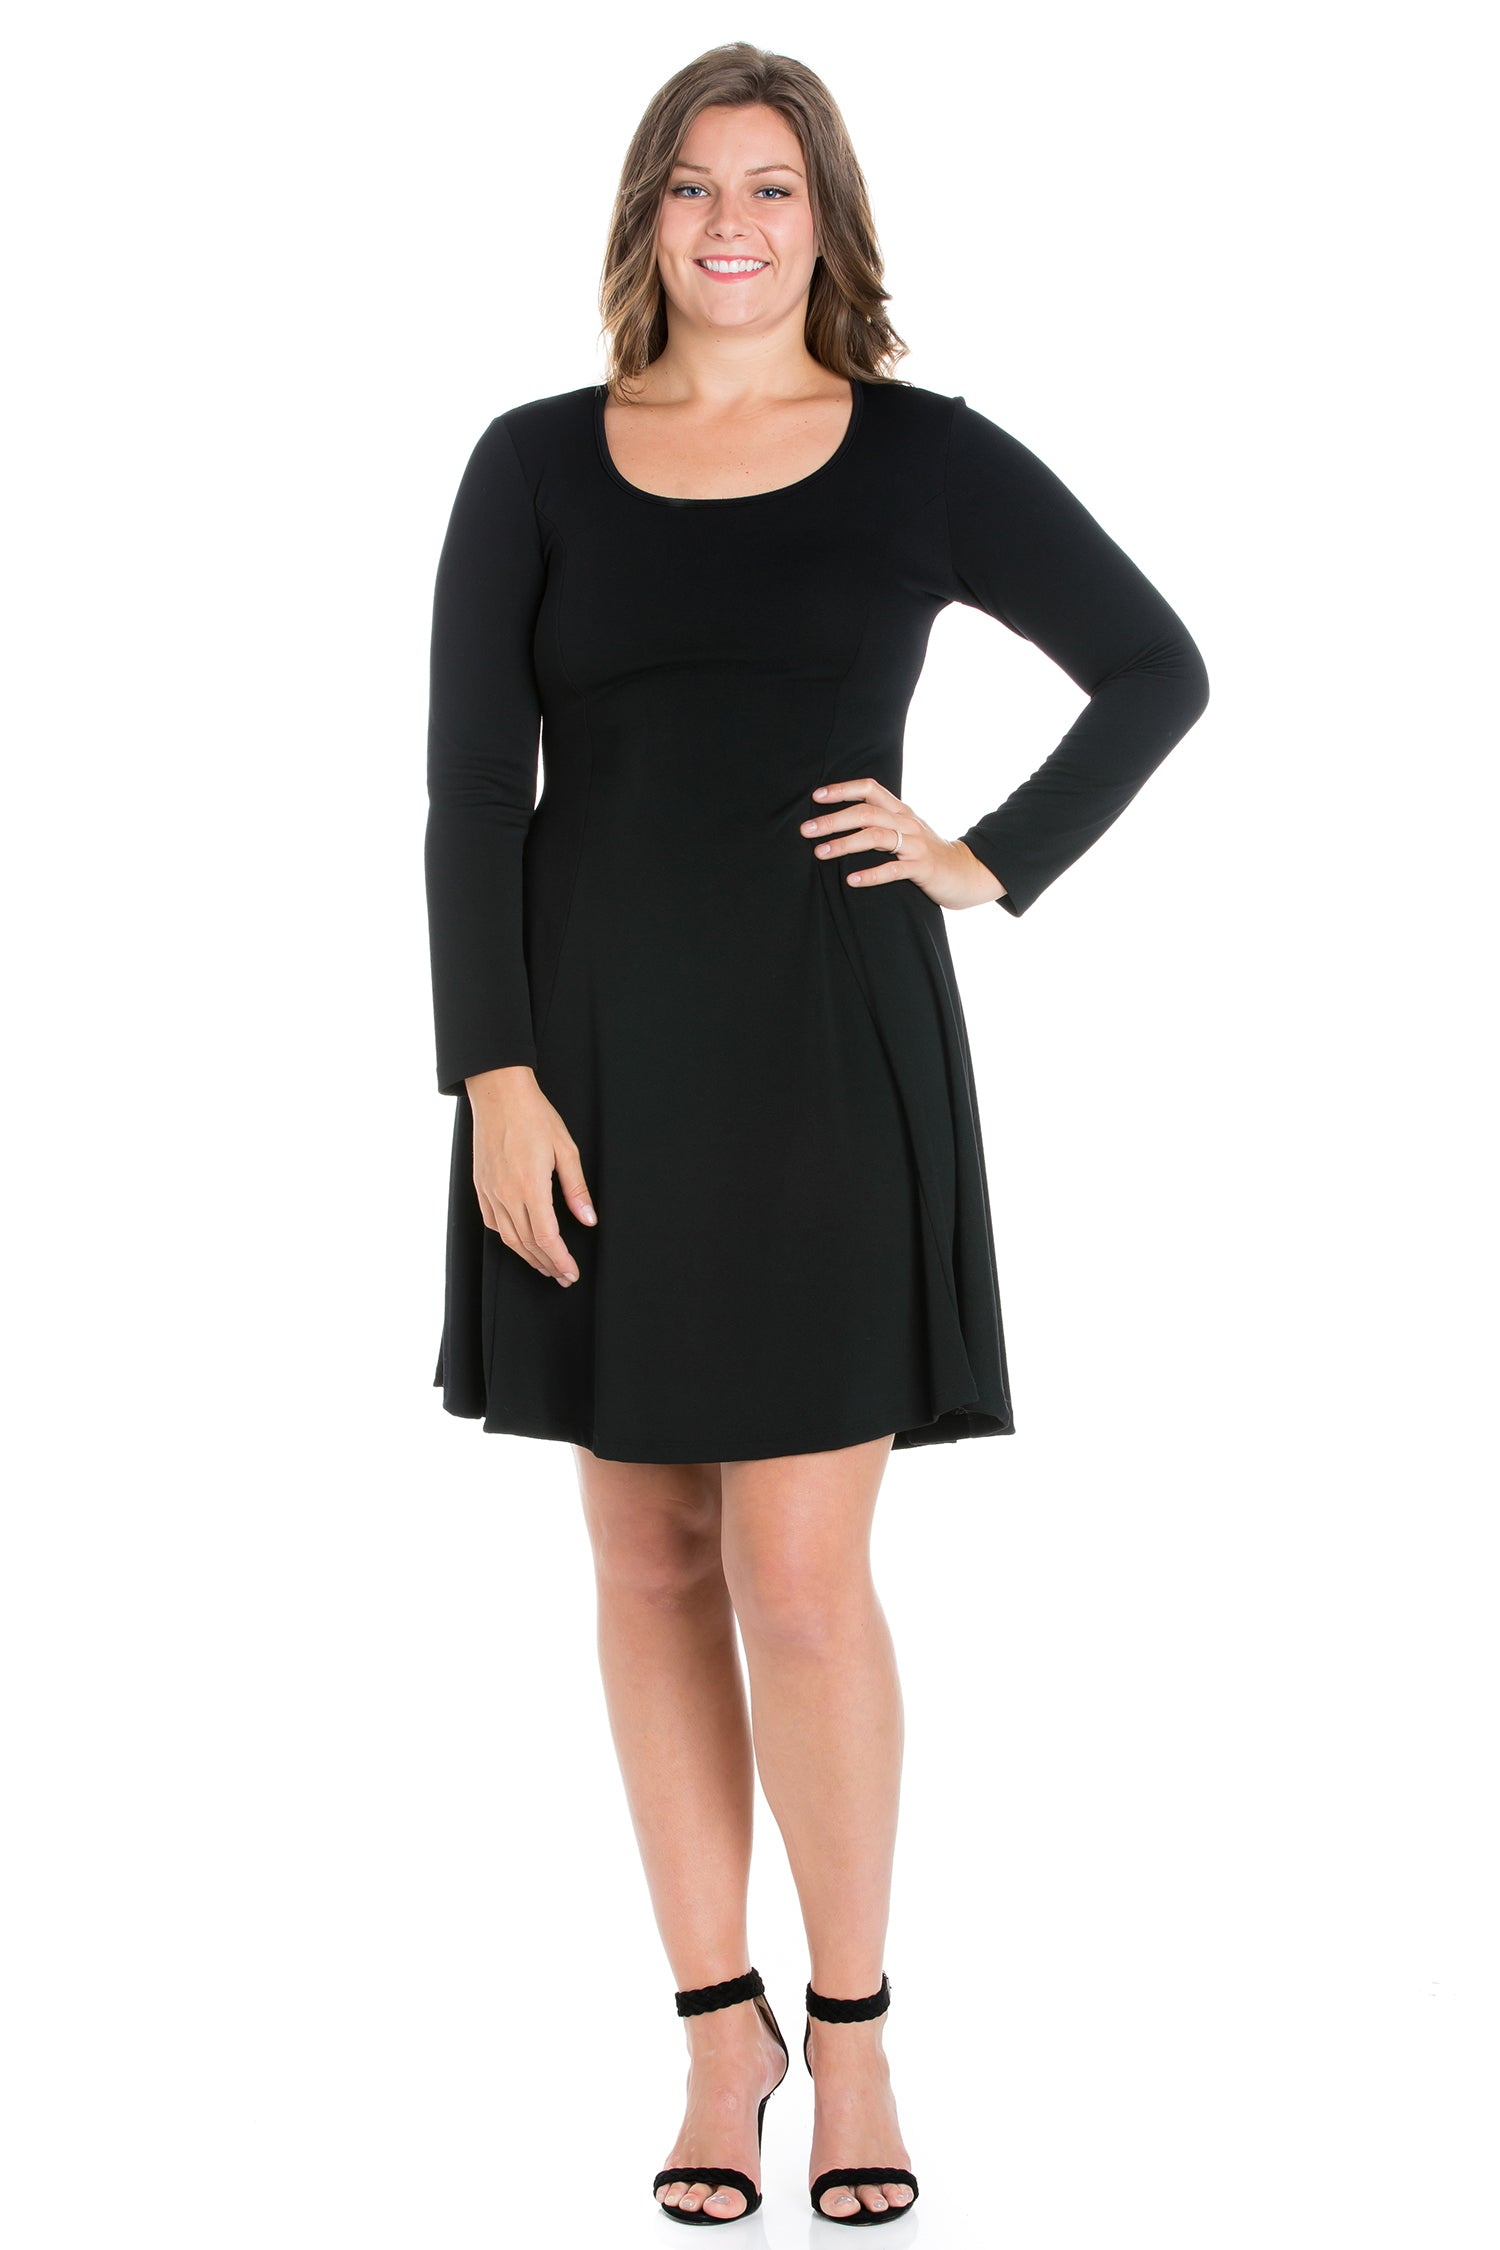 24seven Comfort Apparel Long Sleeve Knee Length Plus Size Skater Dress